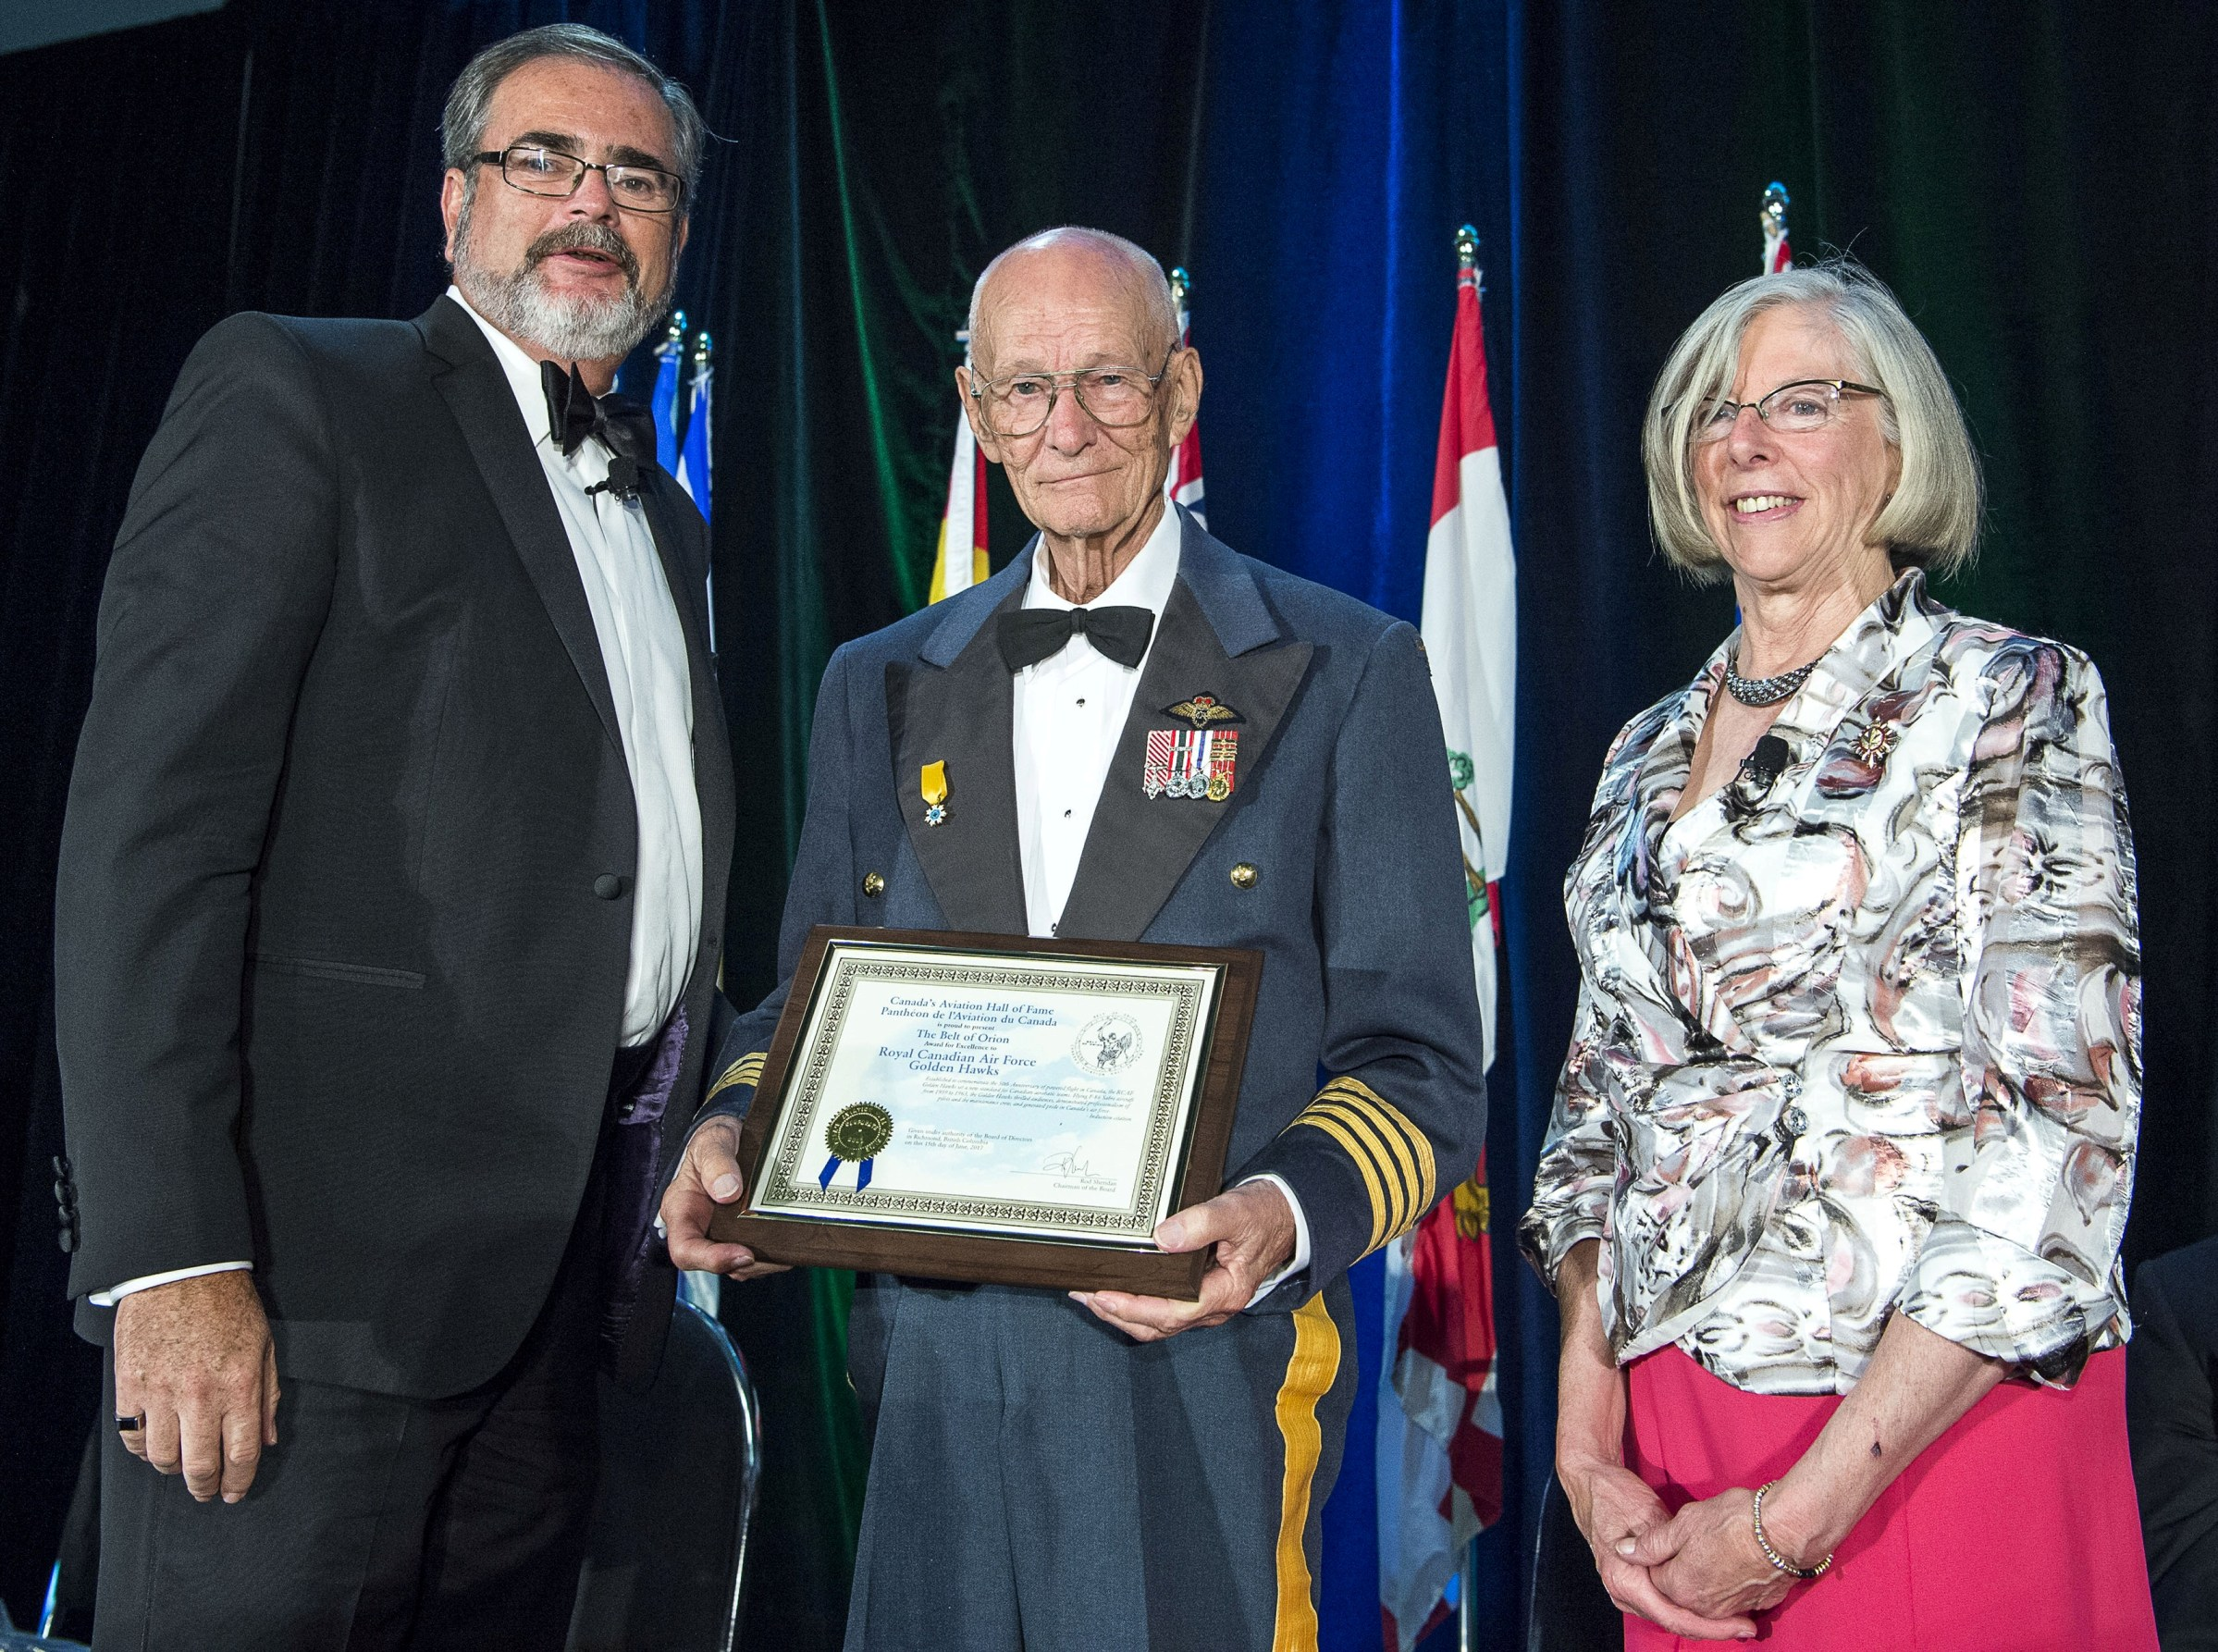 Wing Commander (retired) Fern Villeneuve, centre, accepts the certificate for the Belt of Orion Award of Excellence presented to the Golden Hawks by Canada's Aviation Hall of Fame during the 2017 induction ceremonies. At left is Hall board chairman, Rod Sheridan, with guest speaker and presenter Judith Guichon, the Lieutenant-Governor of British Columbia. PHOTO: © Rick Radell photo